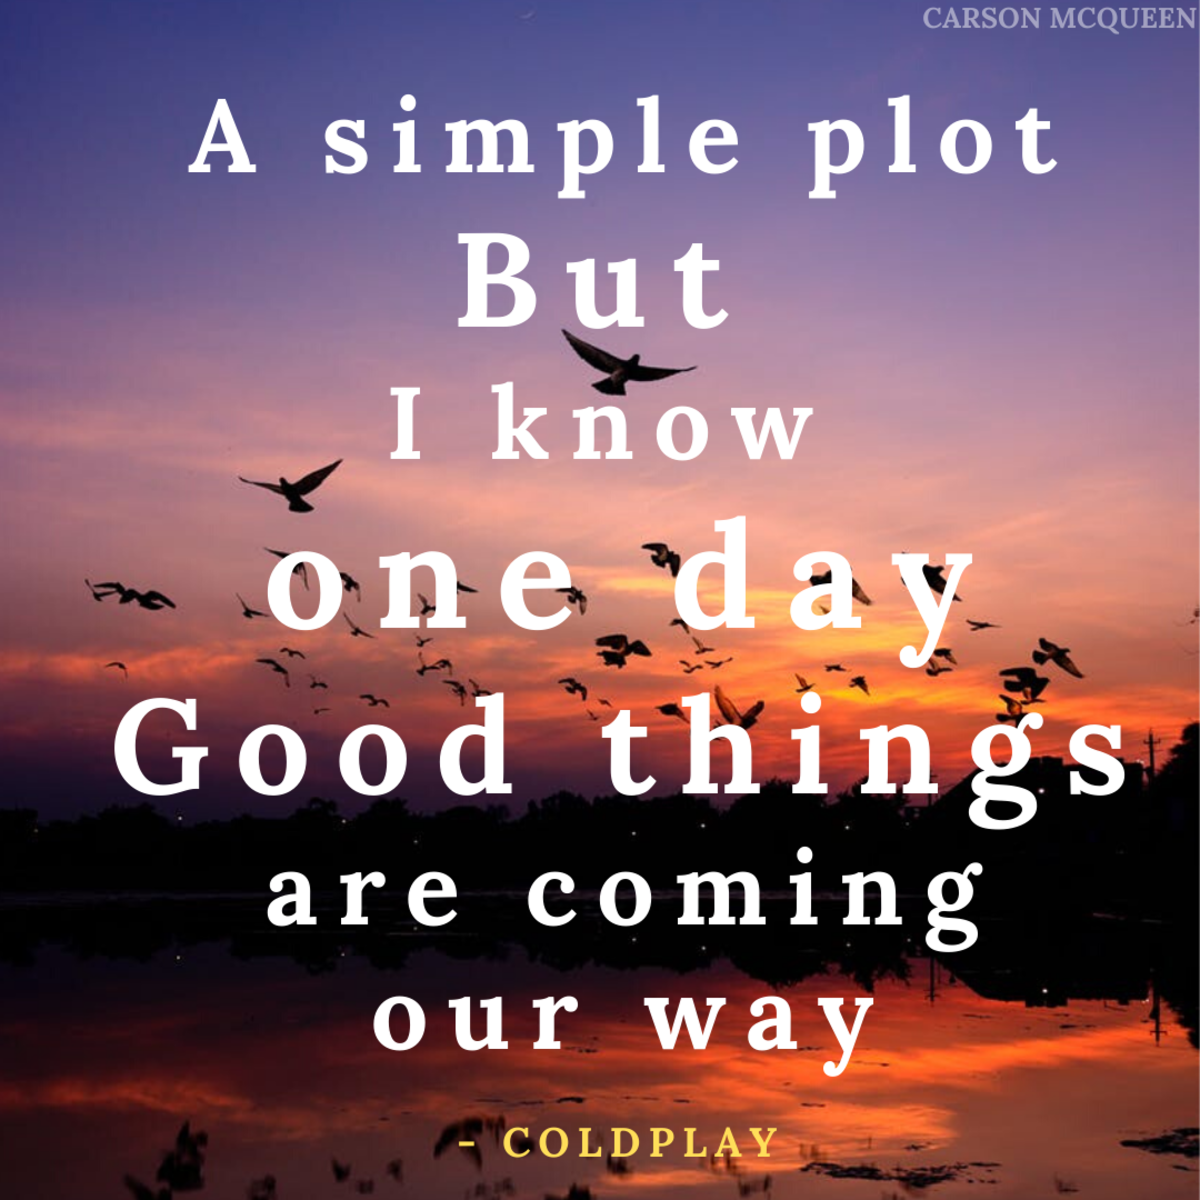 """""""A simple plot. But I know one day, good things are coming our way."""" - Coldplay"""